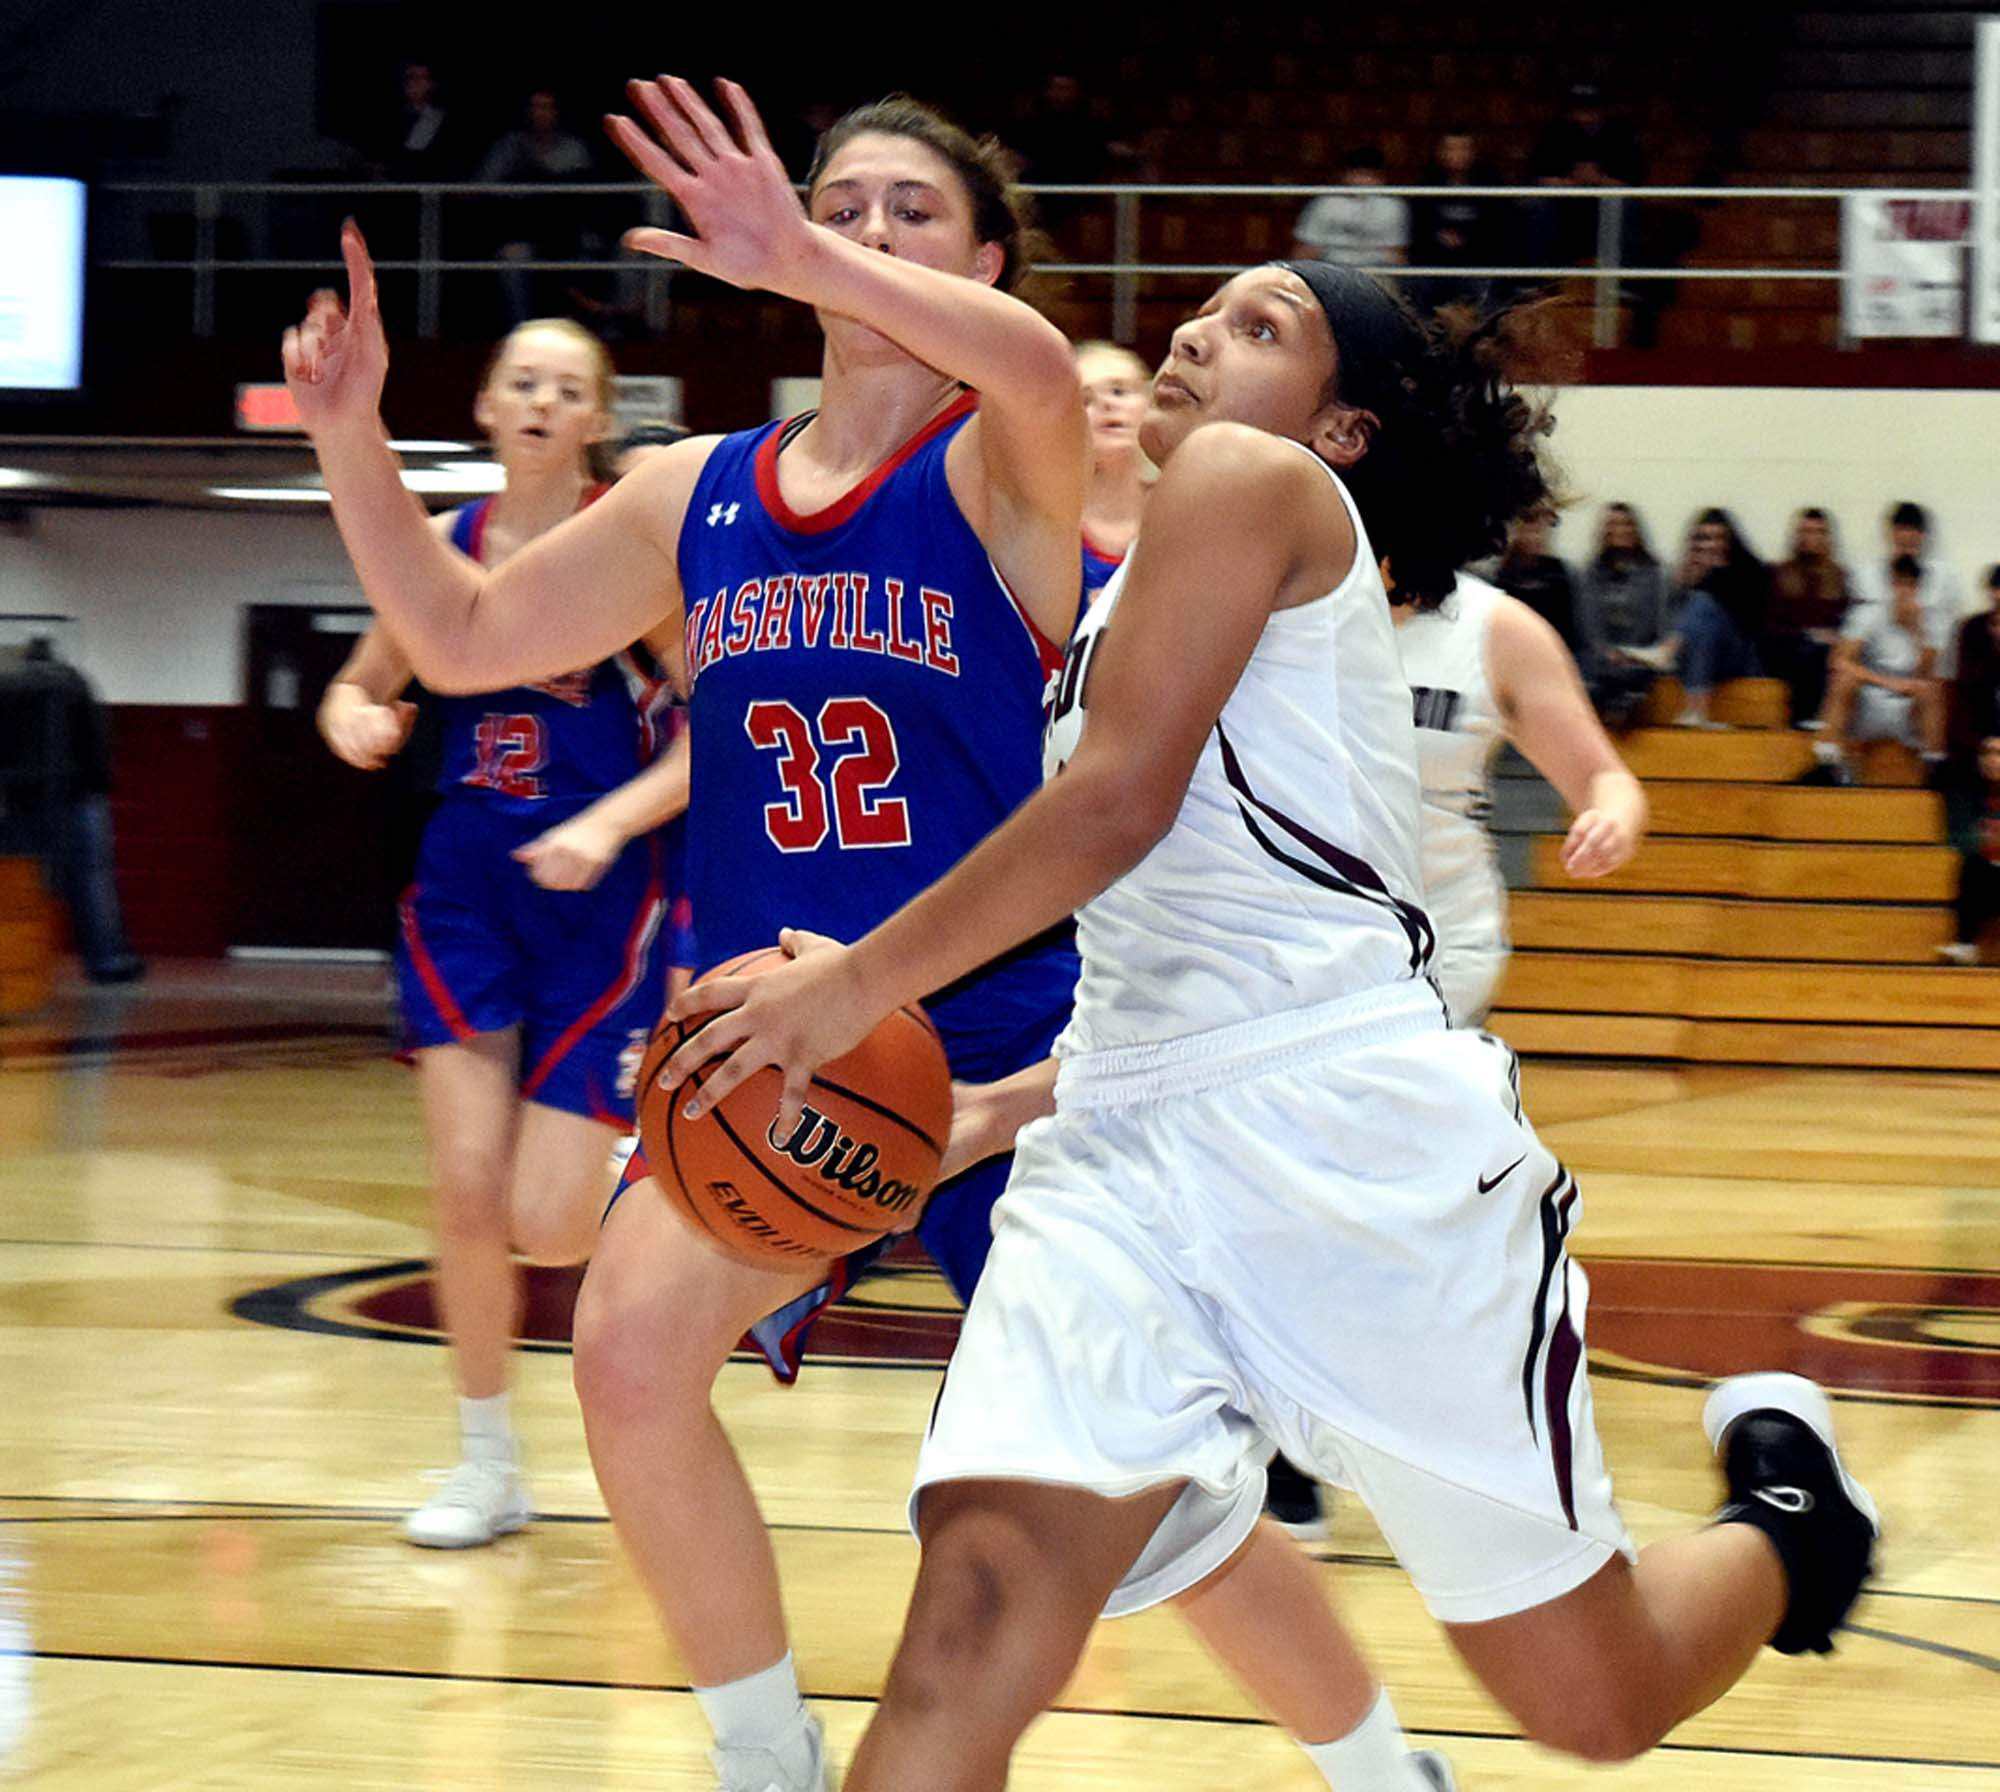 Benton High School junior Mady Wallace goes up for an uncontested layup during the Rangerettes game against Nashville's Hornettes Saturday at Rich Herrin Gym. Wallace scored 11 points, sharing high-point honors with Addisyn Miller. Benton High School junior Mady Wallace goes up for an uncontested layup during the Rangerettes game against Nashville's Hornettes Saturday at Rich Herrin Gym. Wallace scored 11 points, sharing high-point honors with Addisyn Miller.